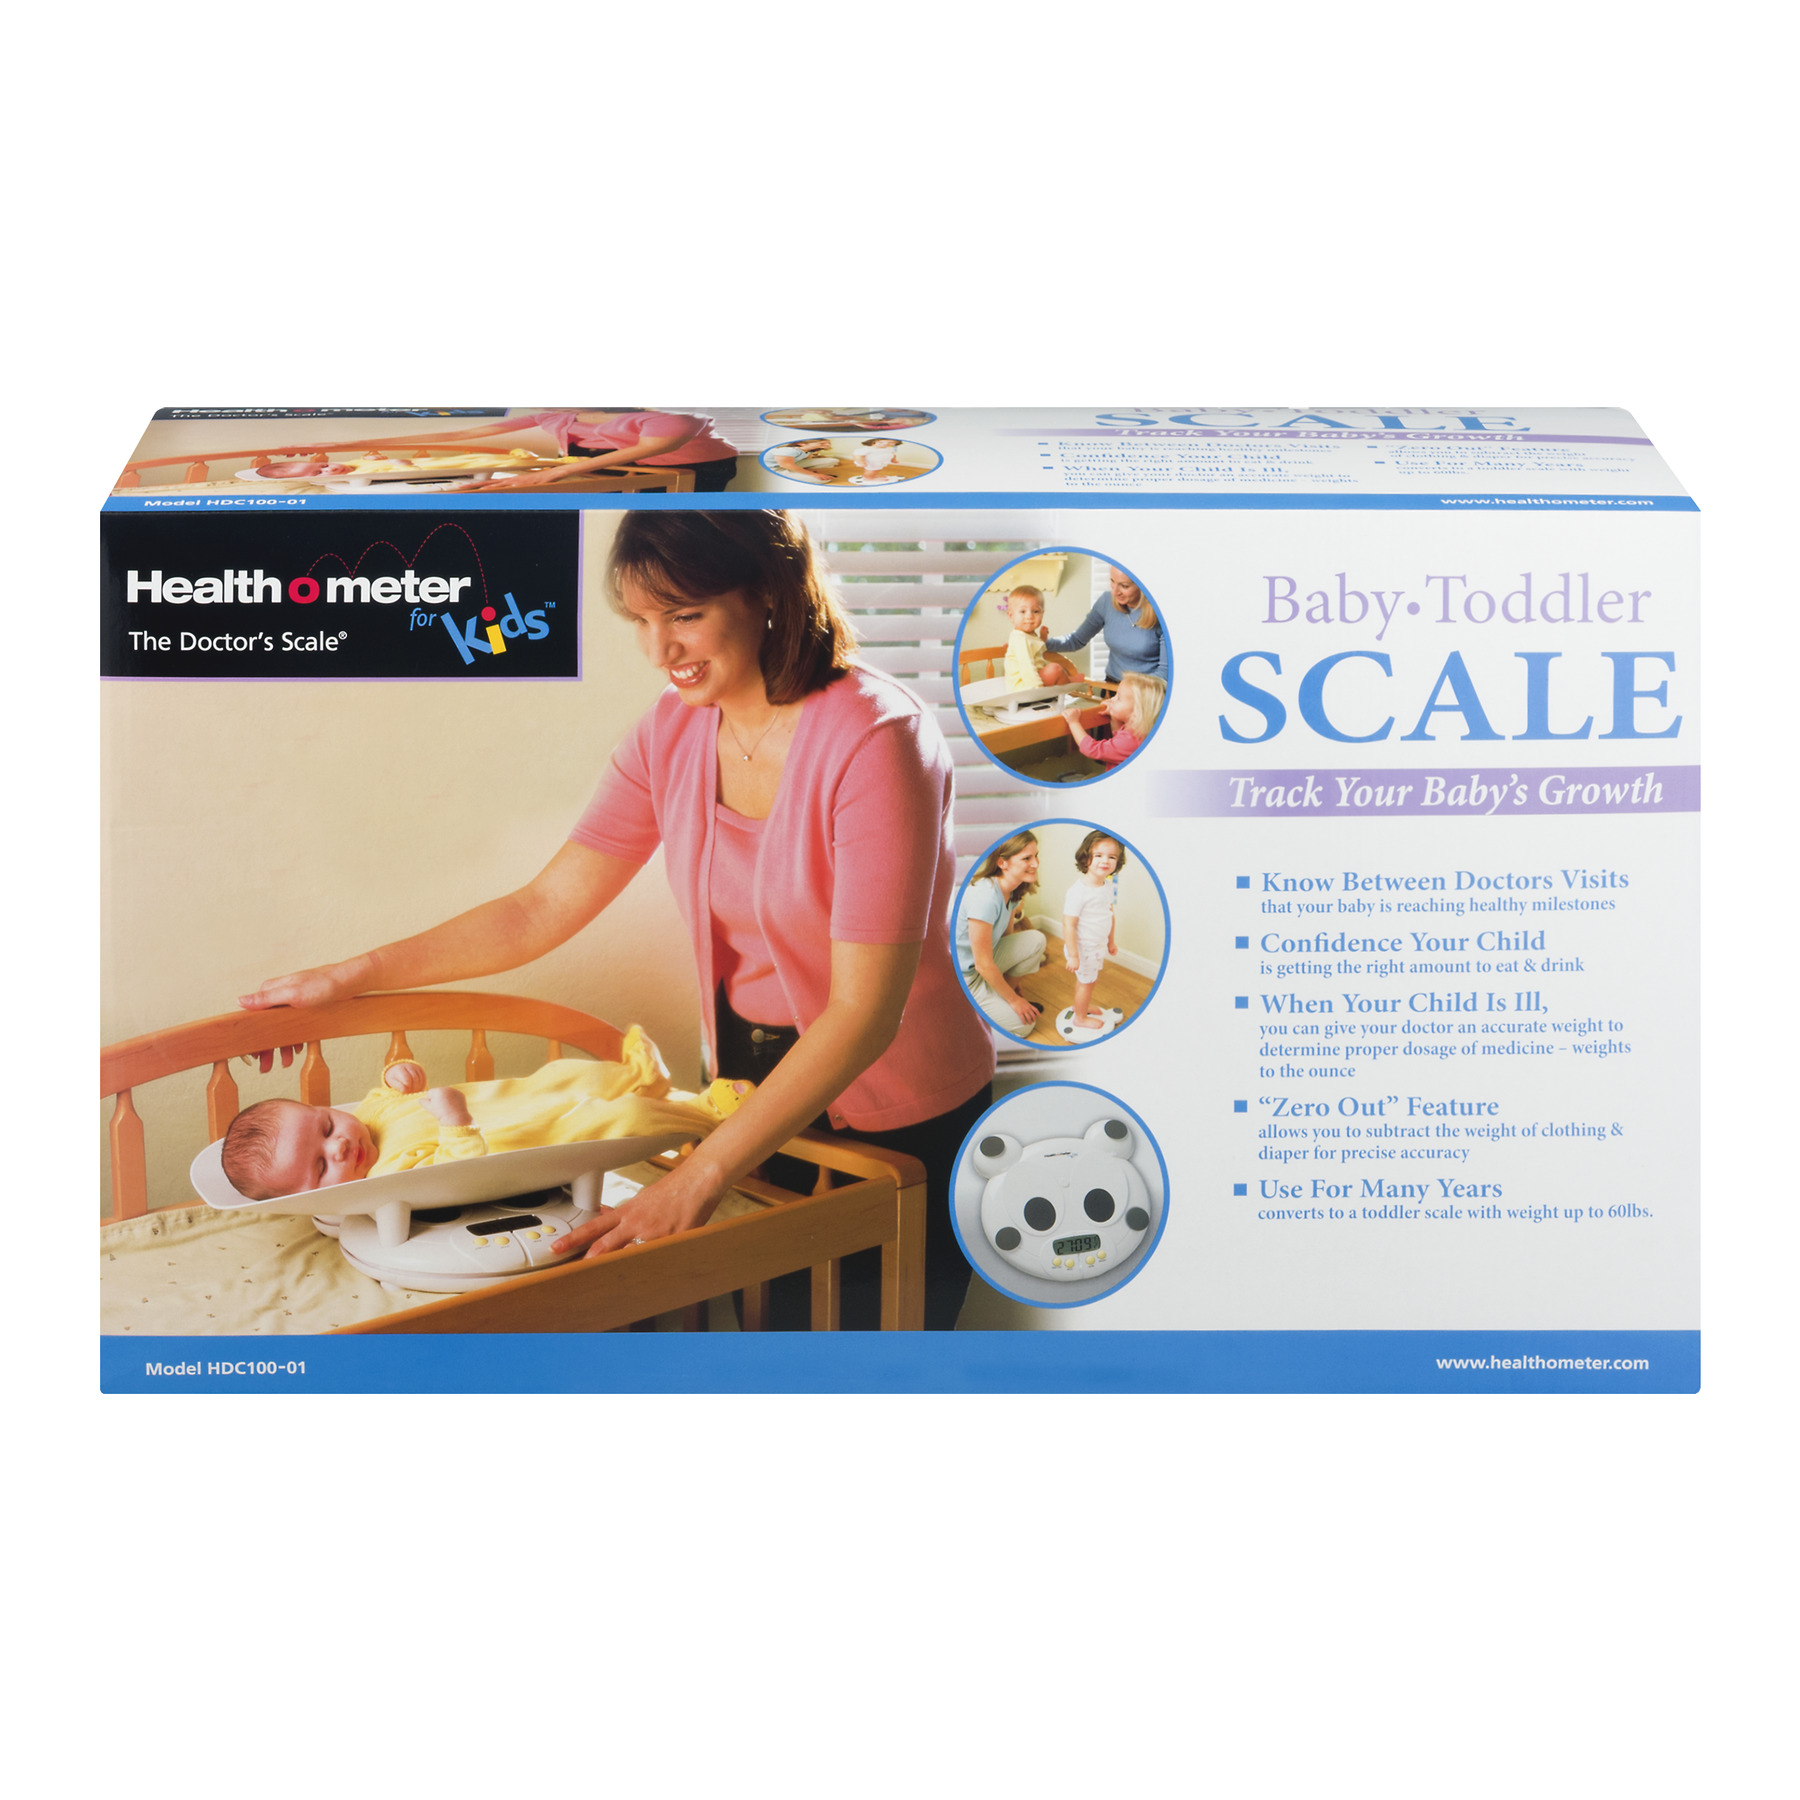 Health O Meter Baby Toddler Scale, 1.0 CT